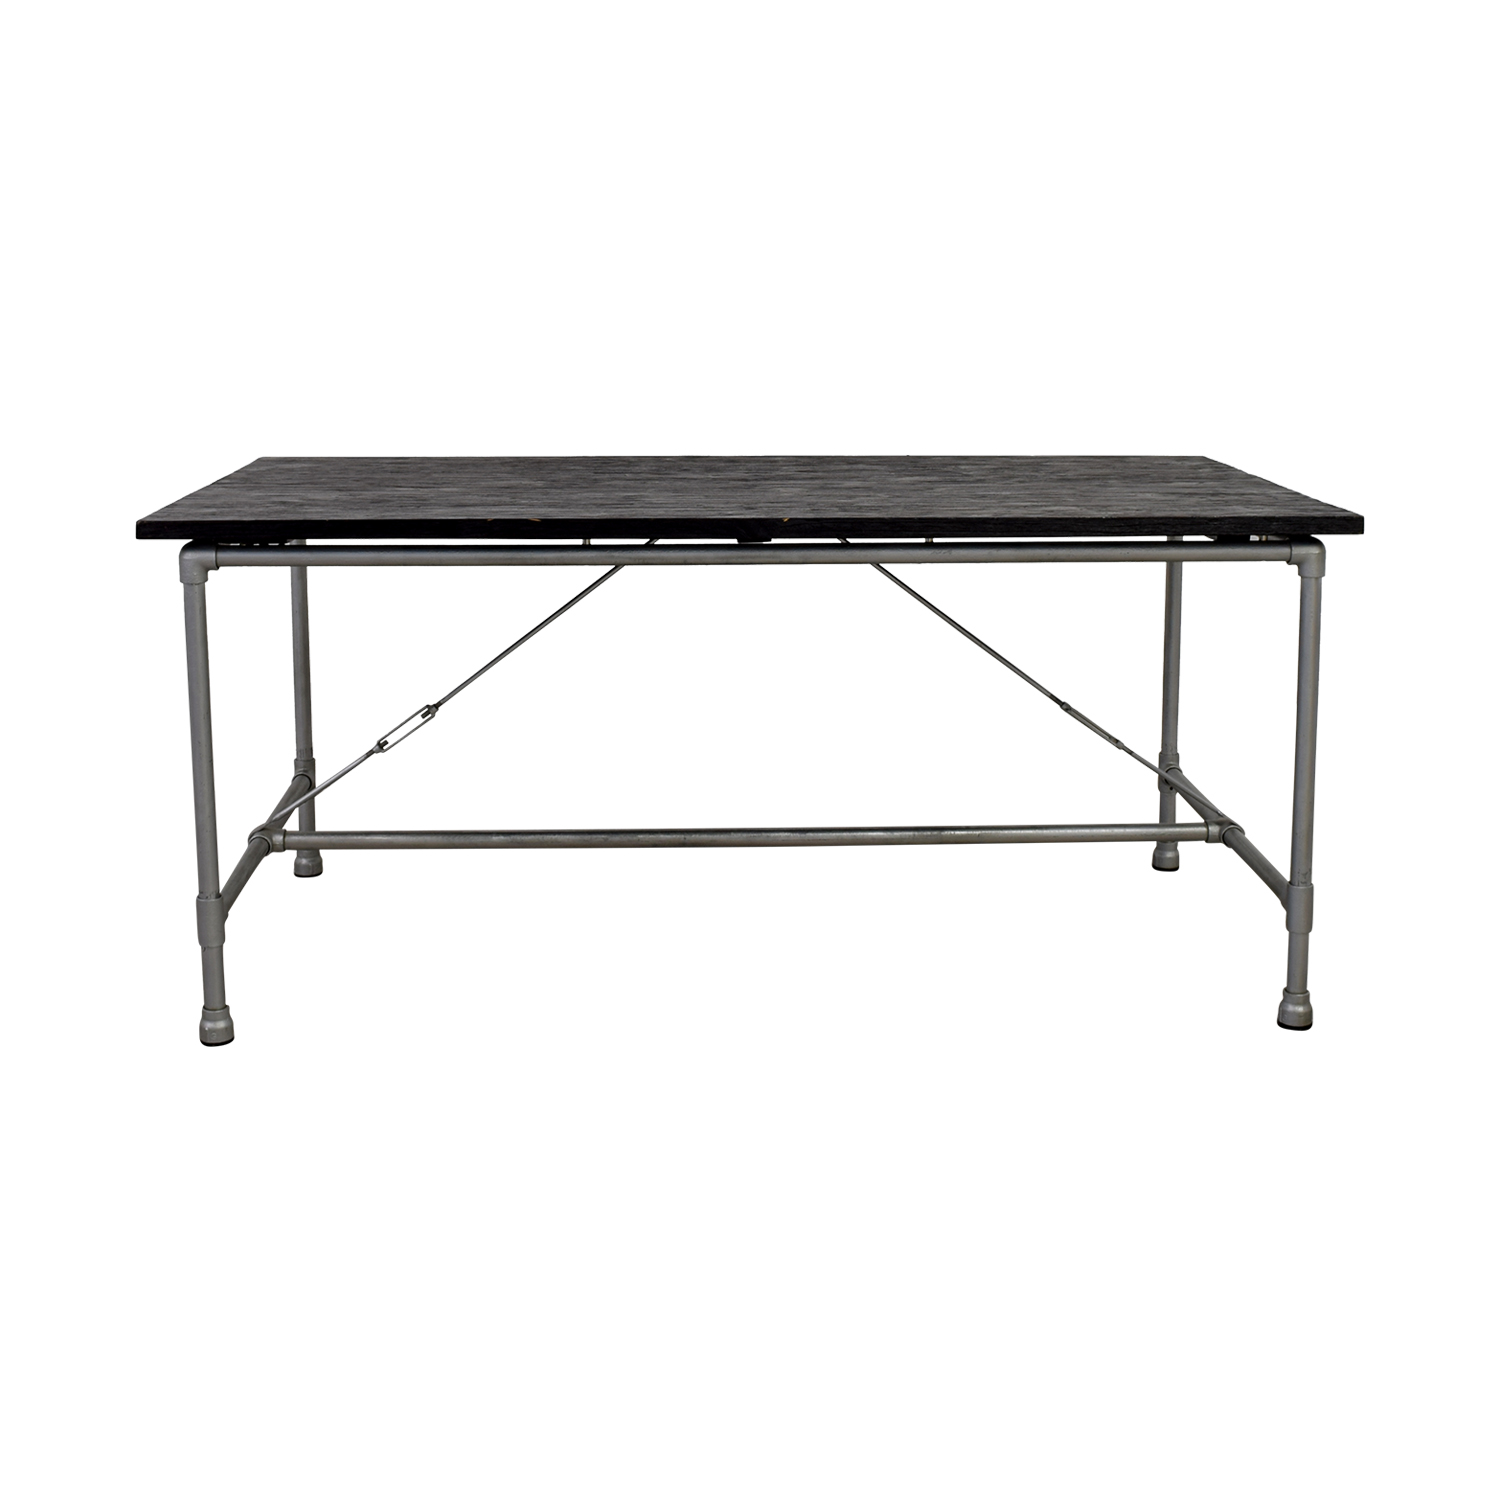 ABC Carpet & Home ABC Carpet & Home Black and Steel Table